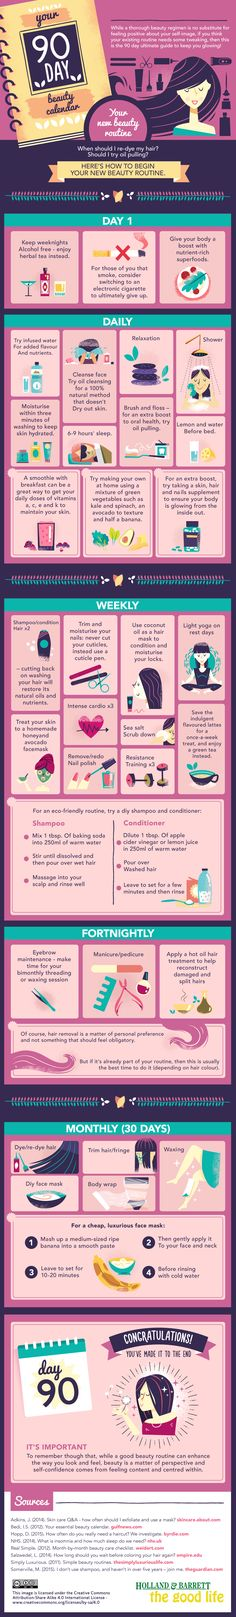 90 Days Guide To Look Healthy And Glam Here's a great 90 day plan to get your body in tip-top shape just in time for Summer.Here's a great 90 day plan to get your body in tip-top shape just in time for Summer. Beauty Care, Diy Beauty, Beauty Skin, Health And Beauty, Beauty Hacks, Beauty Advice, Beauty Guide, Skin Tips, Skin Care Tips